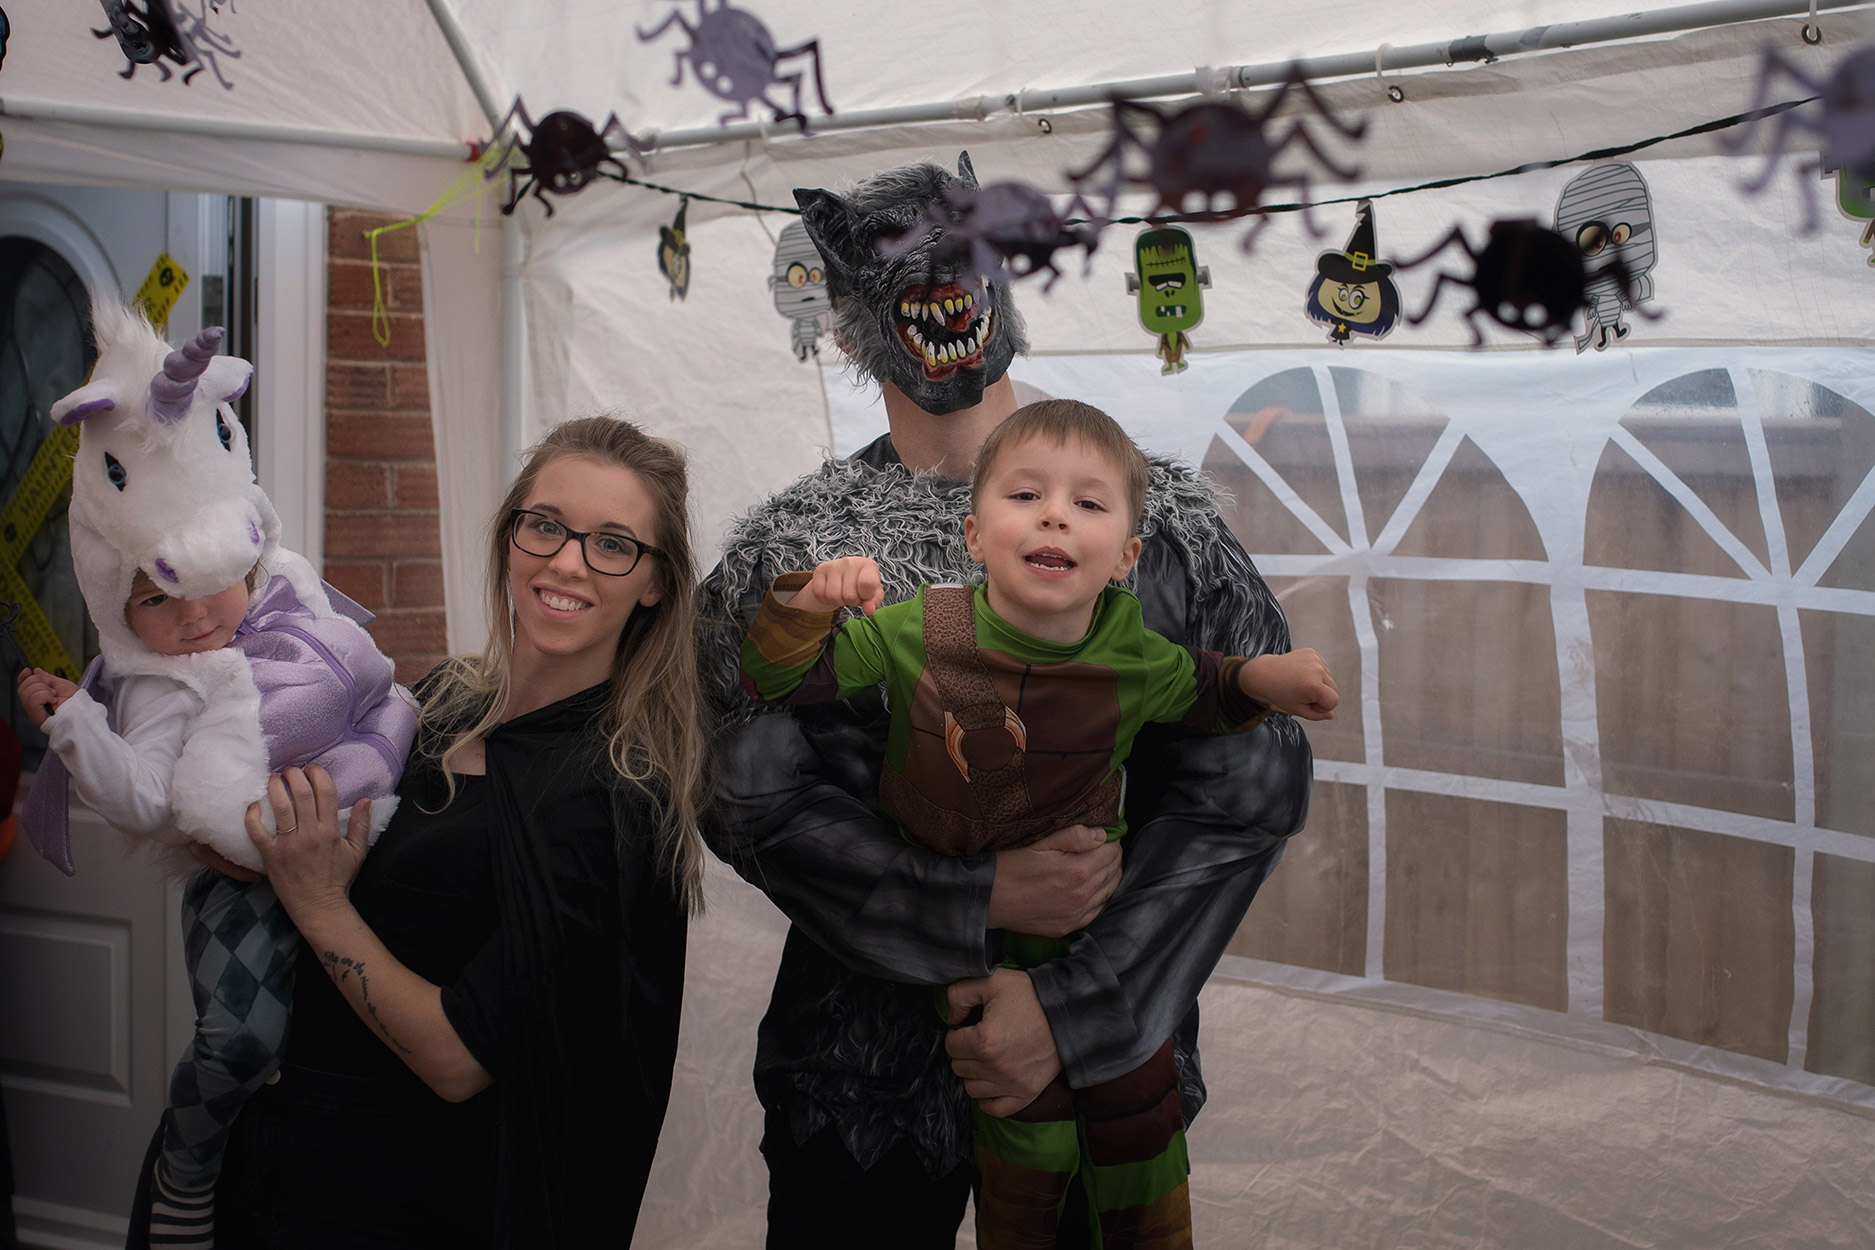 Celebrating halloween with family and werewolf uncle with Frankenstein nephew